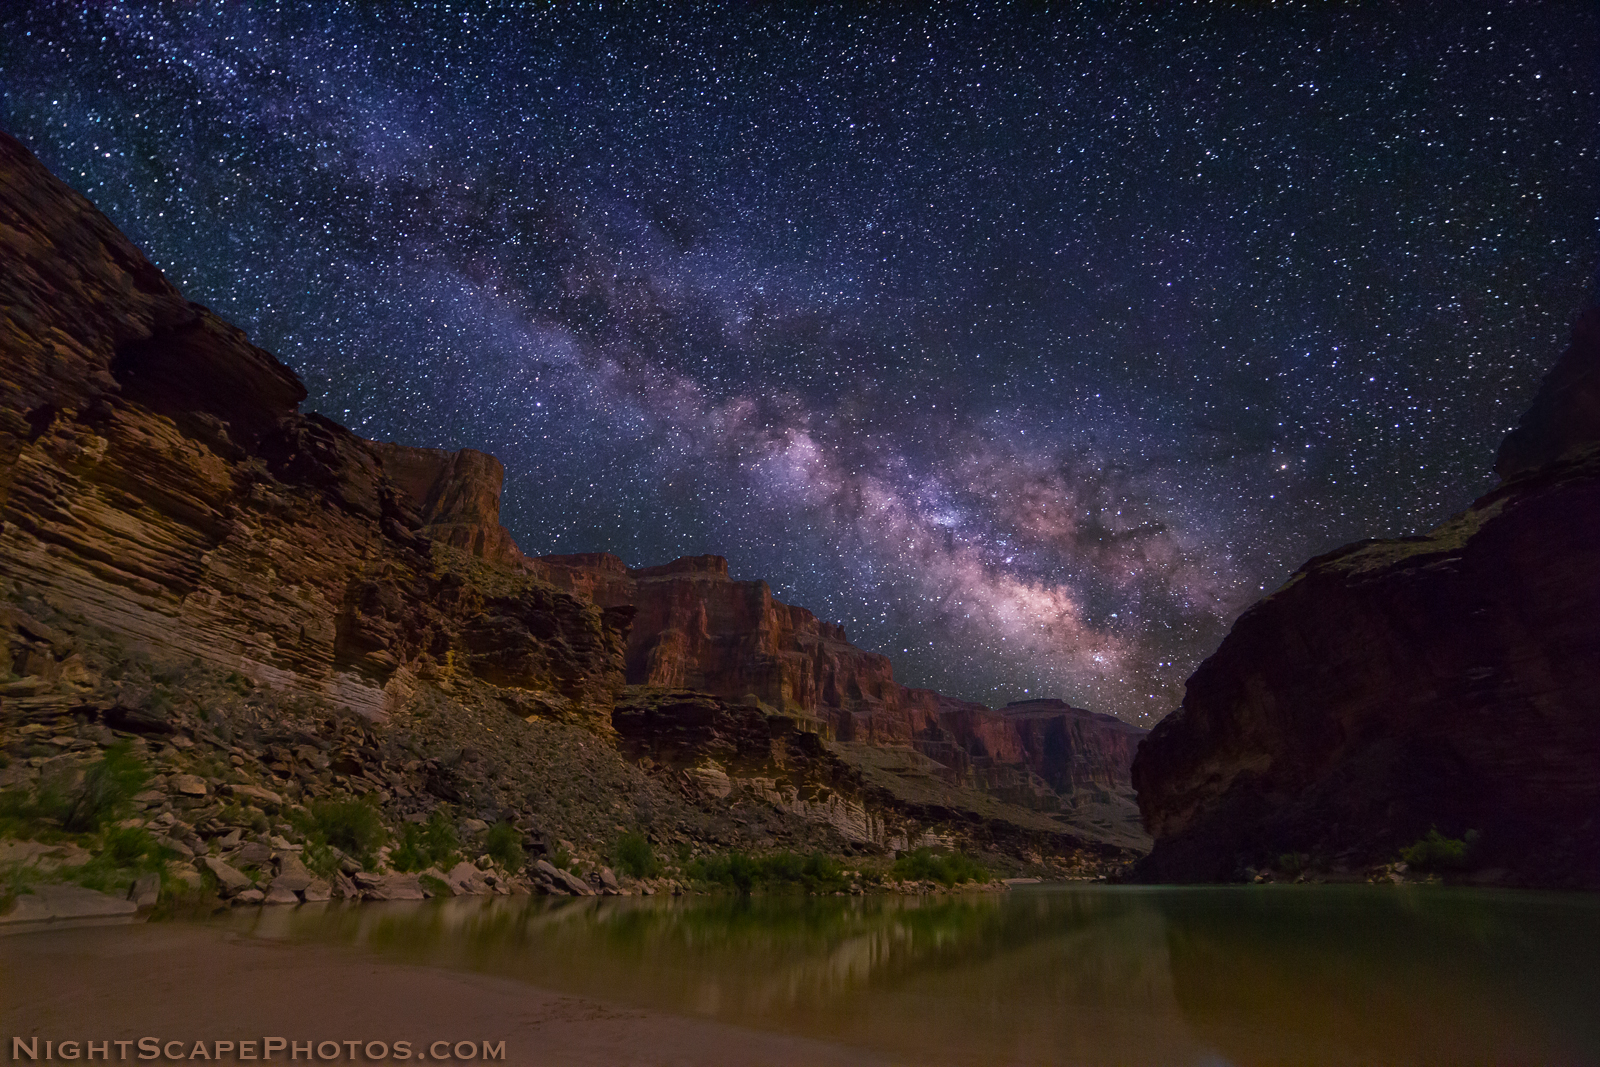 Canyon Vs Colorado >> Into The Night Photography: Overcoming Coma Aberration - Part 2